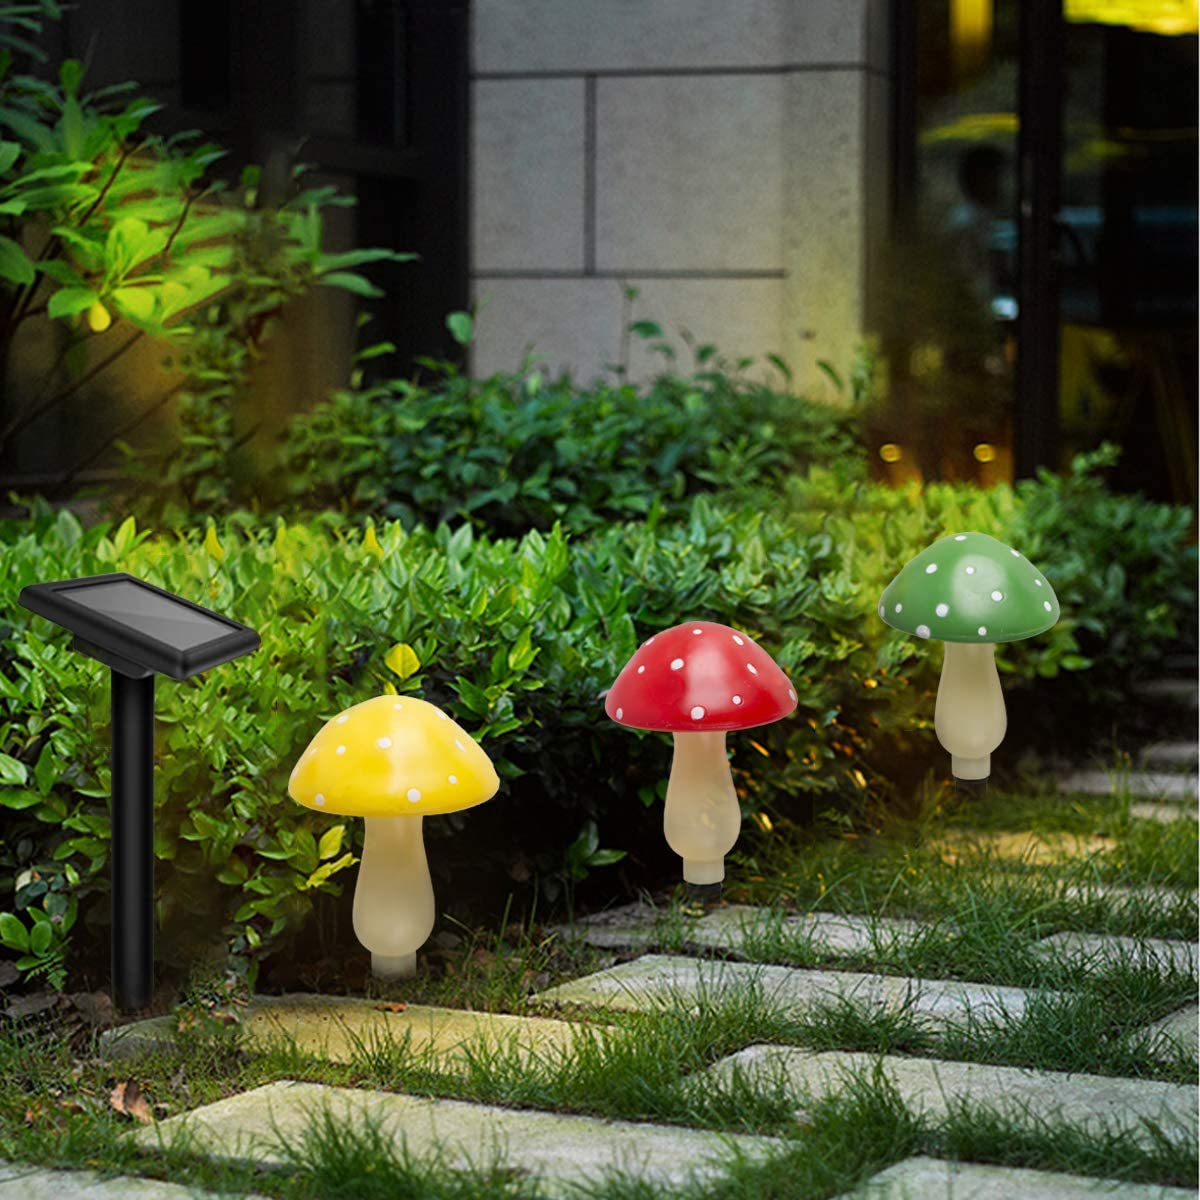 Solar Light Outdoor Mushroom lamp Garden, Decorative Figurine Lights is Suitable for Garden,Yard, Backyard,Lawn,Path Lights 1 Pack 3 Mushroom